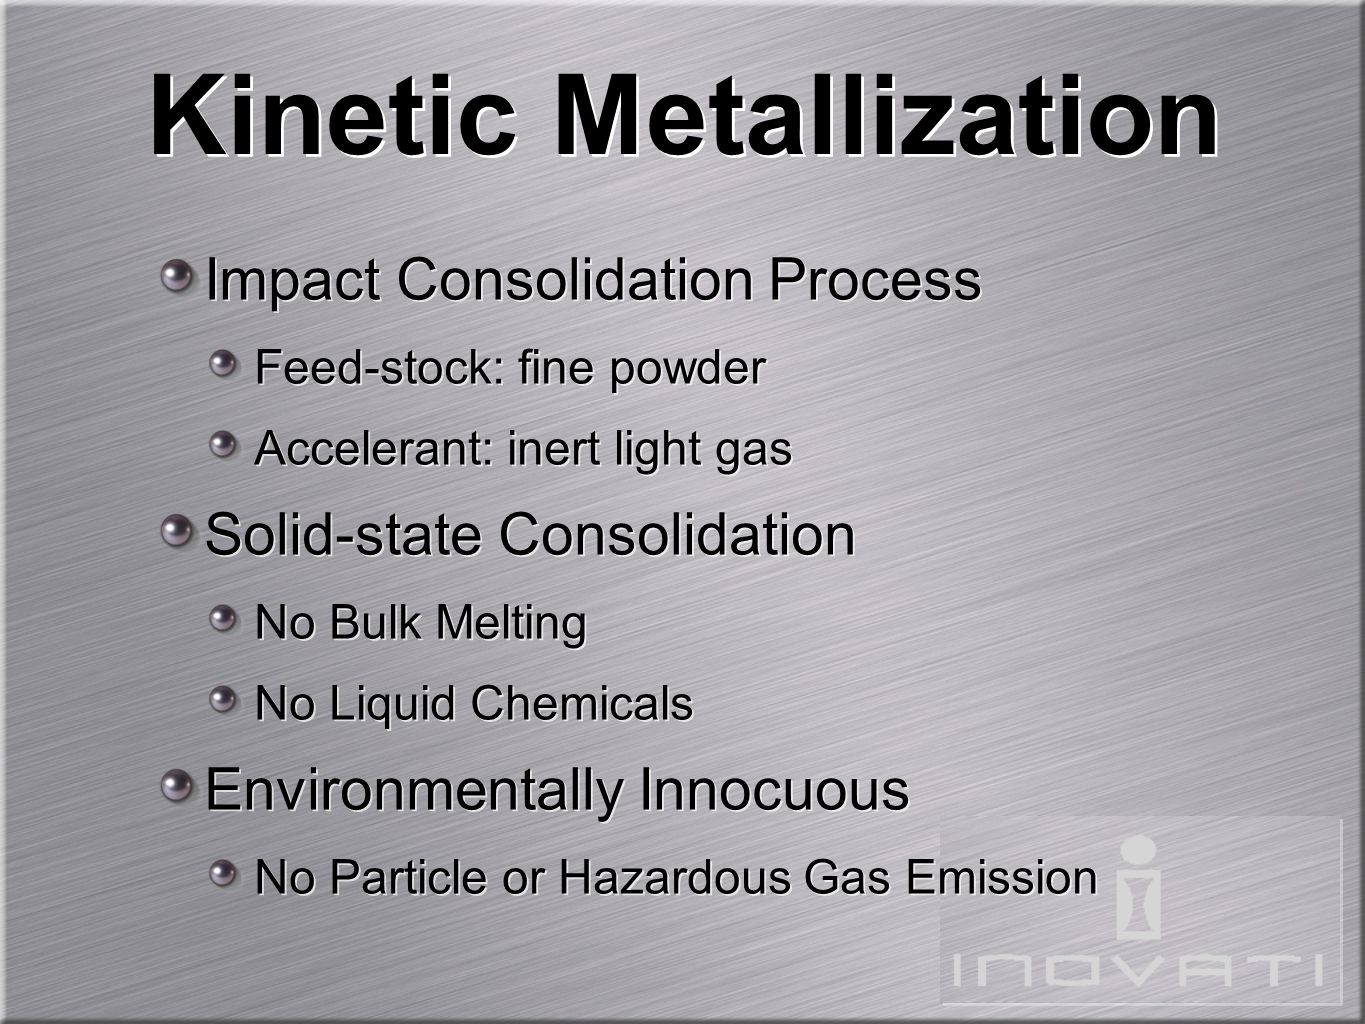 Kinetic Metallization